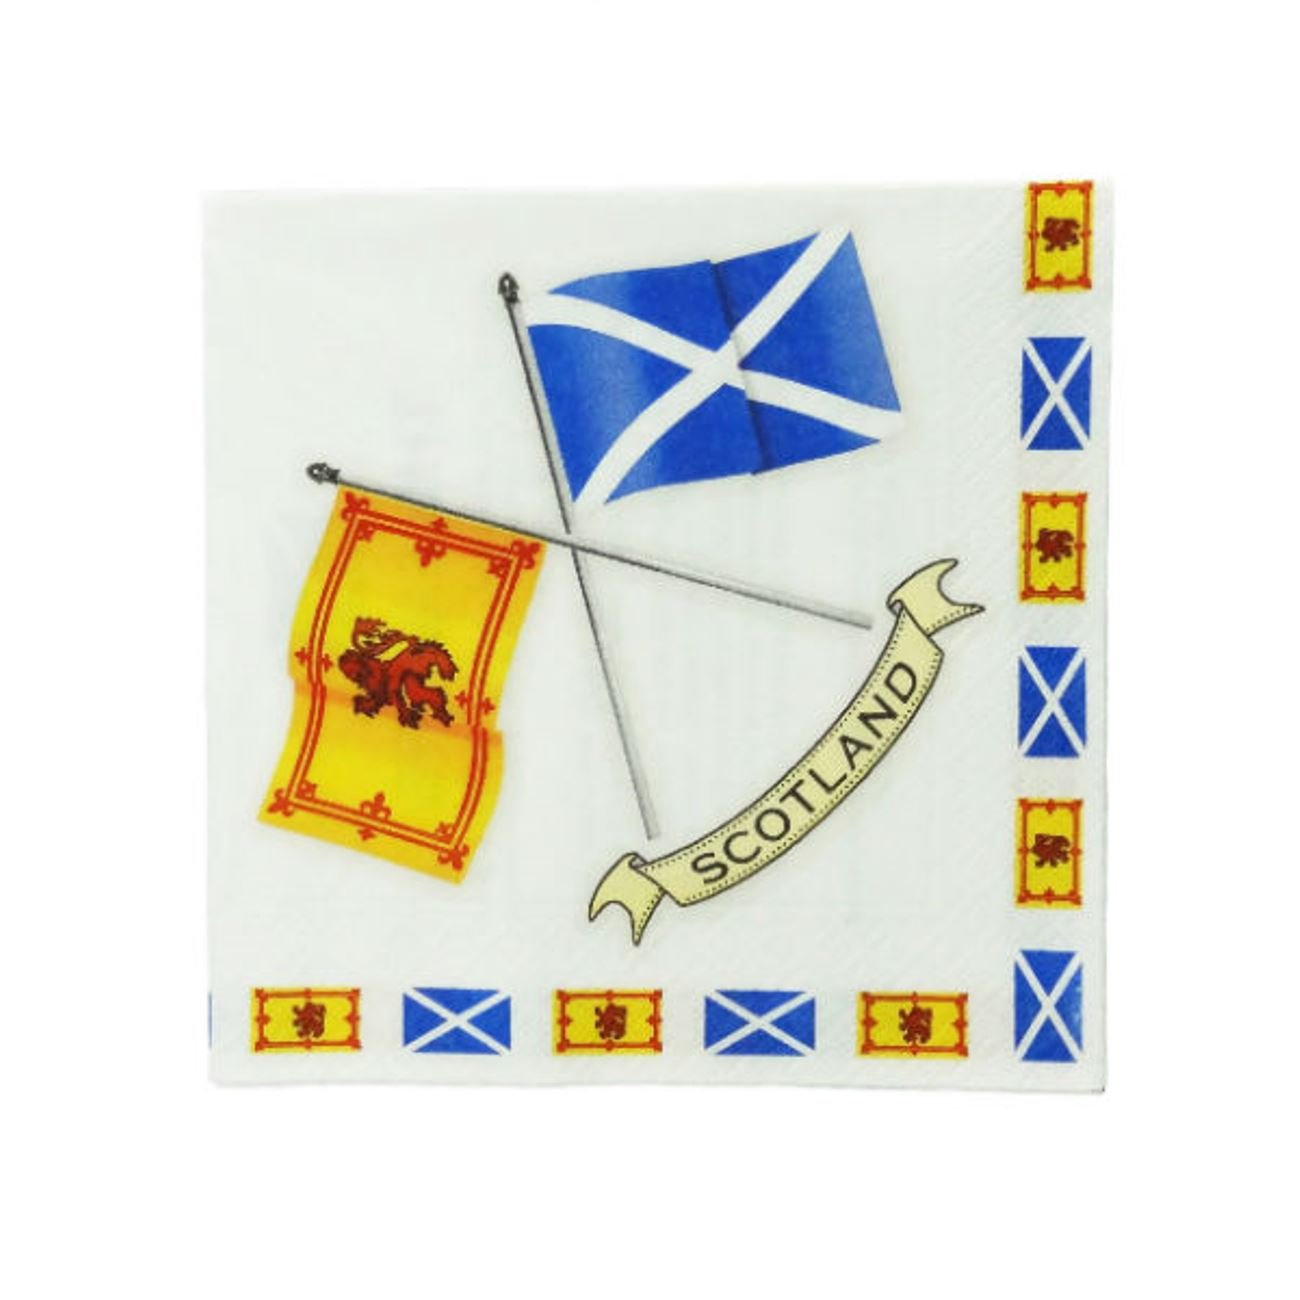 20 Pack Scottish Crossed Flags Design Paper Napkins - Made by Glen Appin